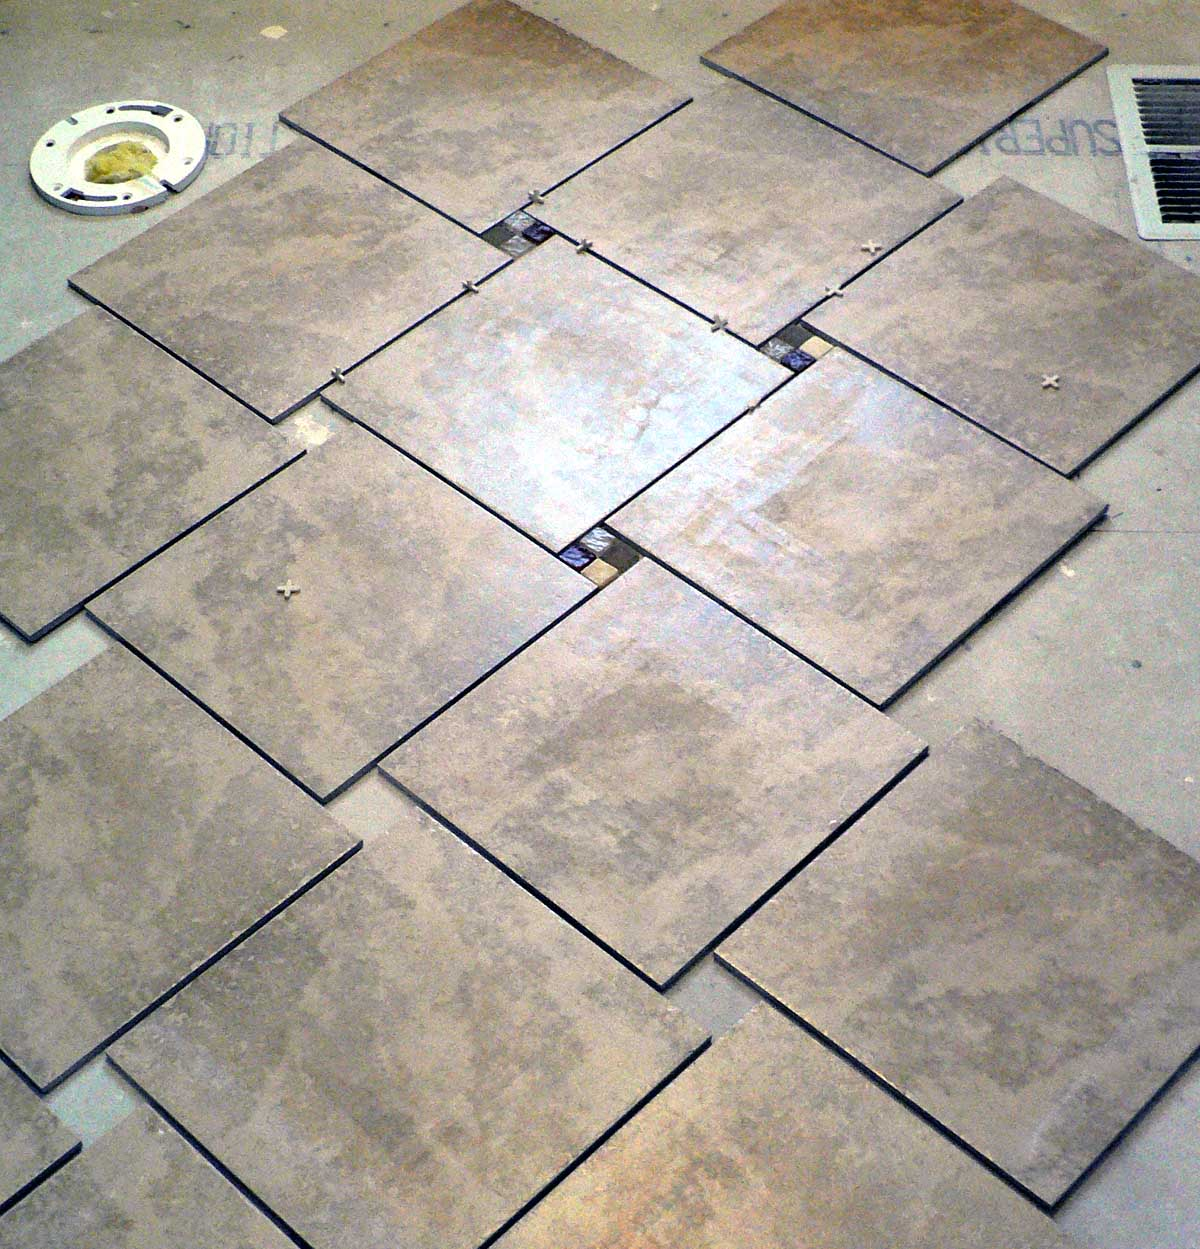 The bathroom floor cast your vote snugasabugbaby for Floor tiles images